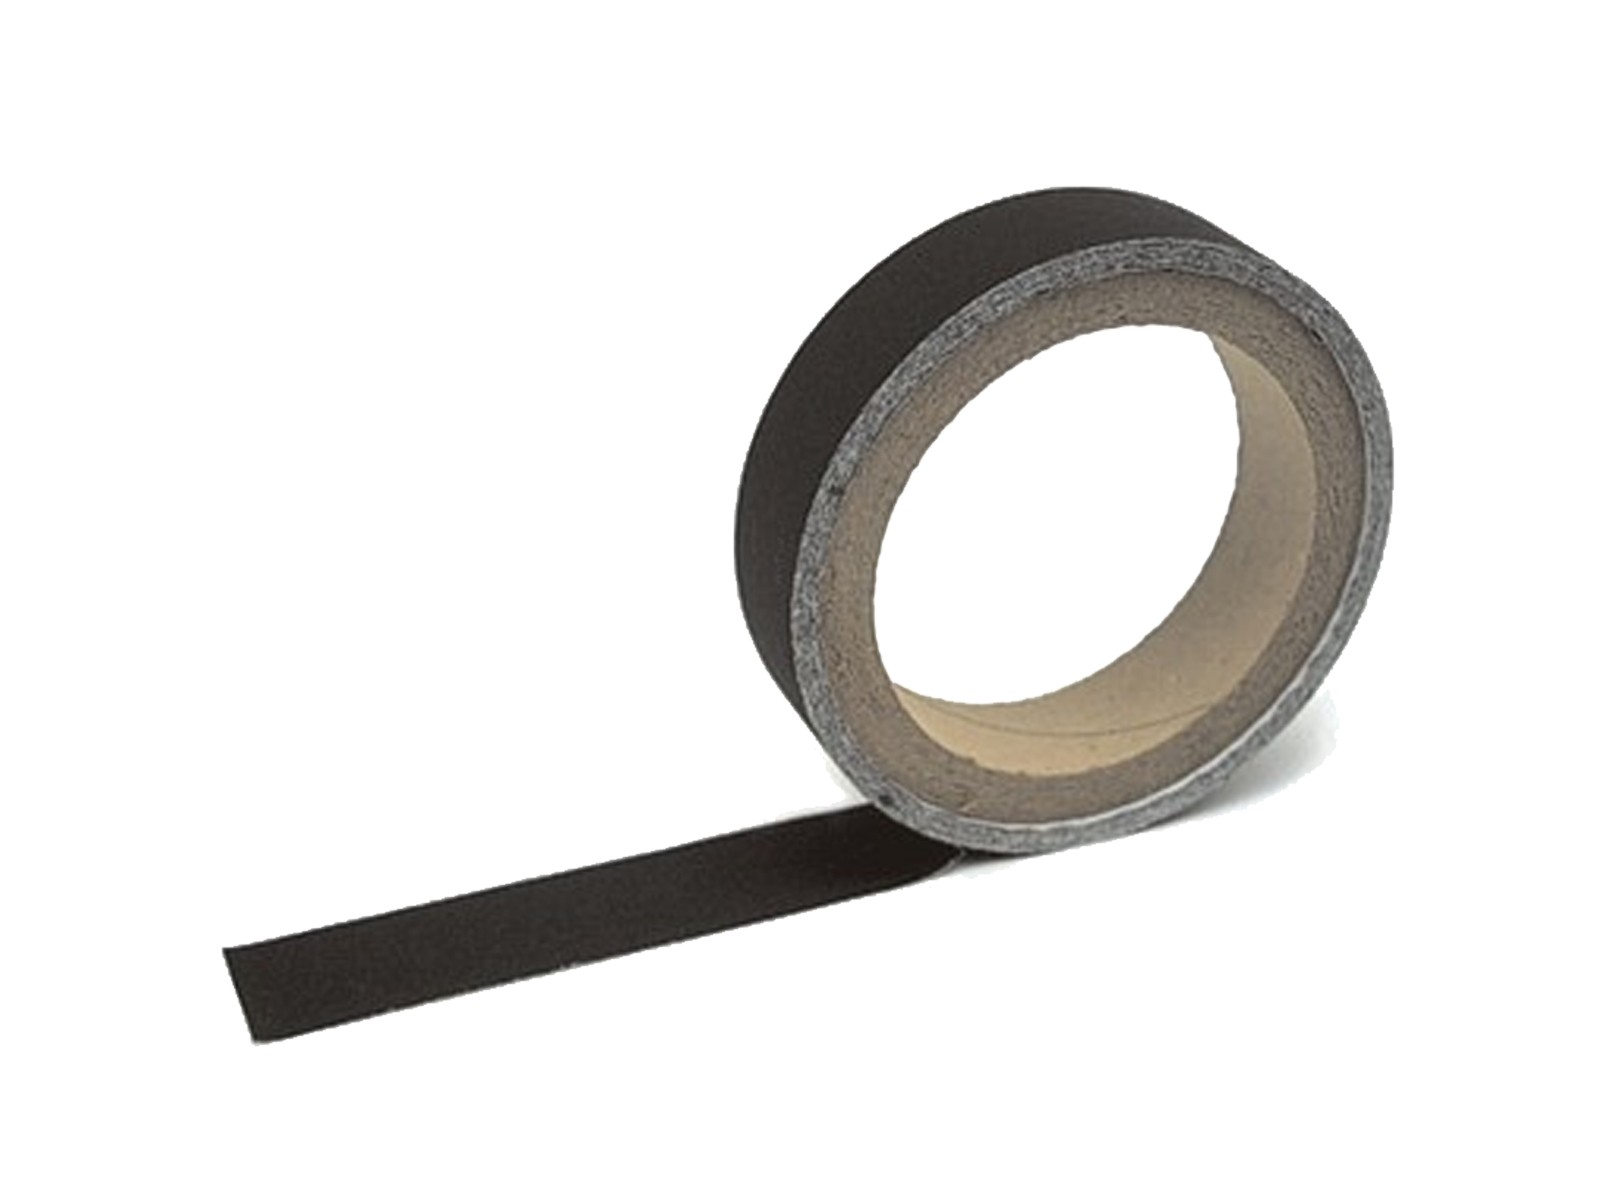 Black Marking Tape 1 in x 50 ft roll